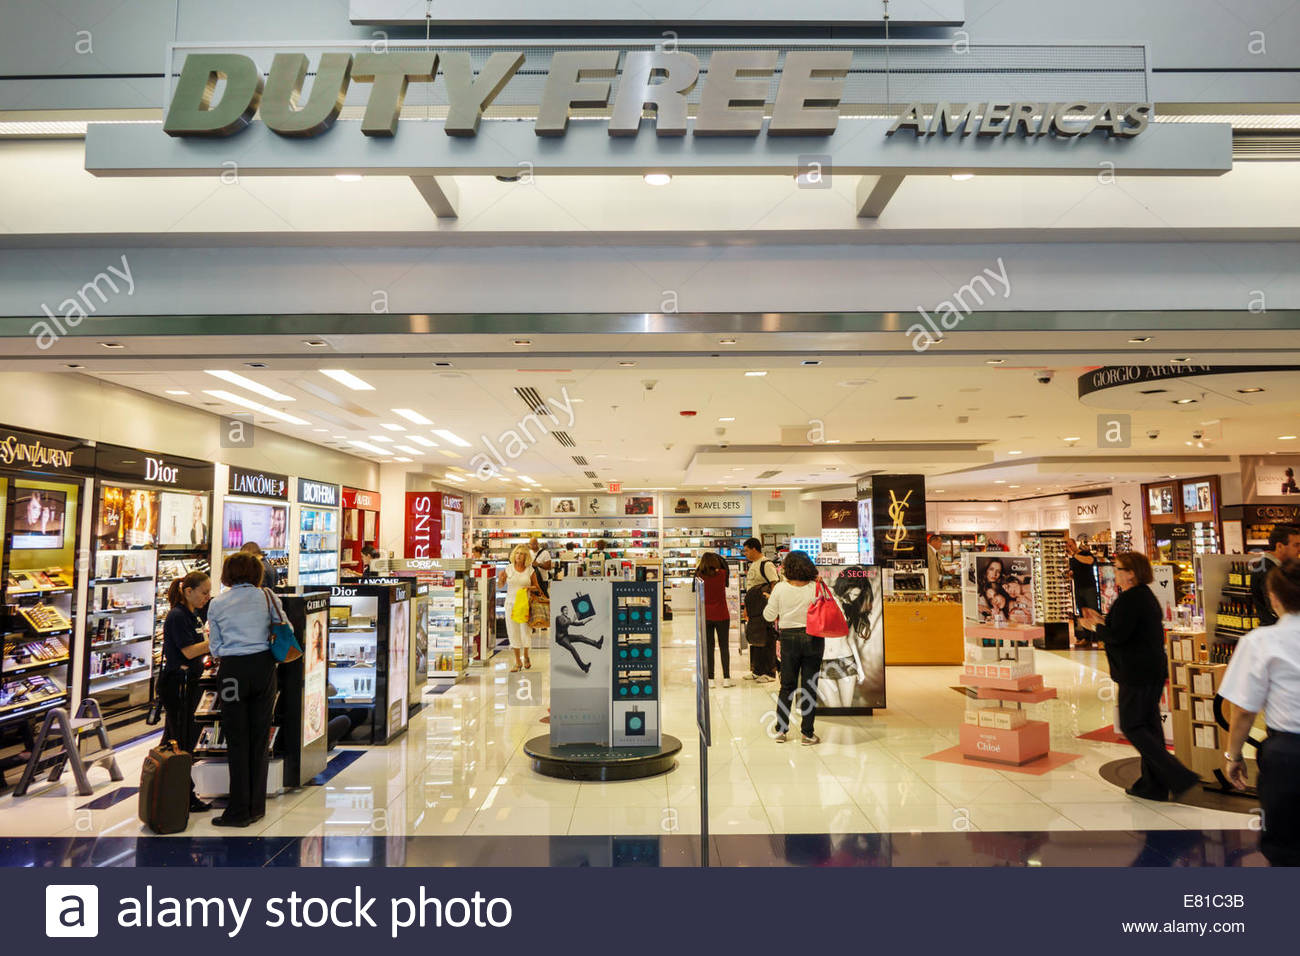 By experiencing Miami International Airport in the most Miami way possible. Here, we offer you the most Miami places to eat, drink and shop in our airport. You don't need to go to Sbarro.